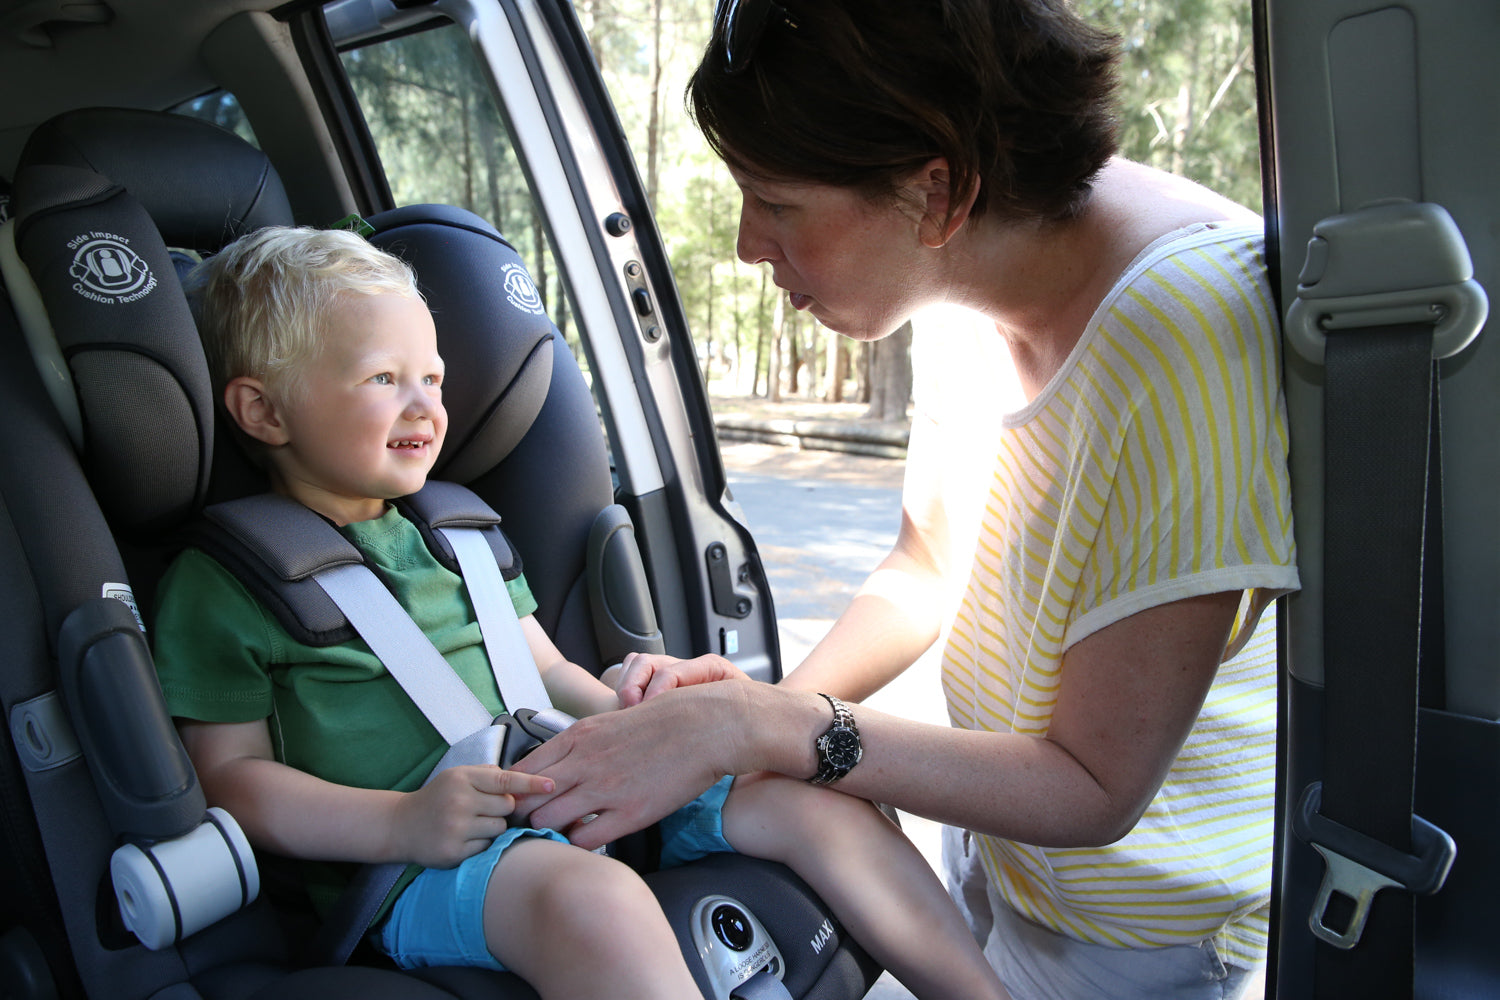 Child Safety Car Seats & Car Booster Seats Sydney